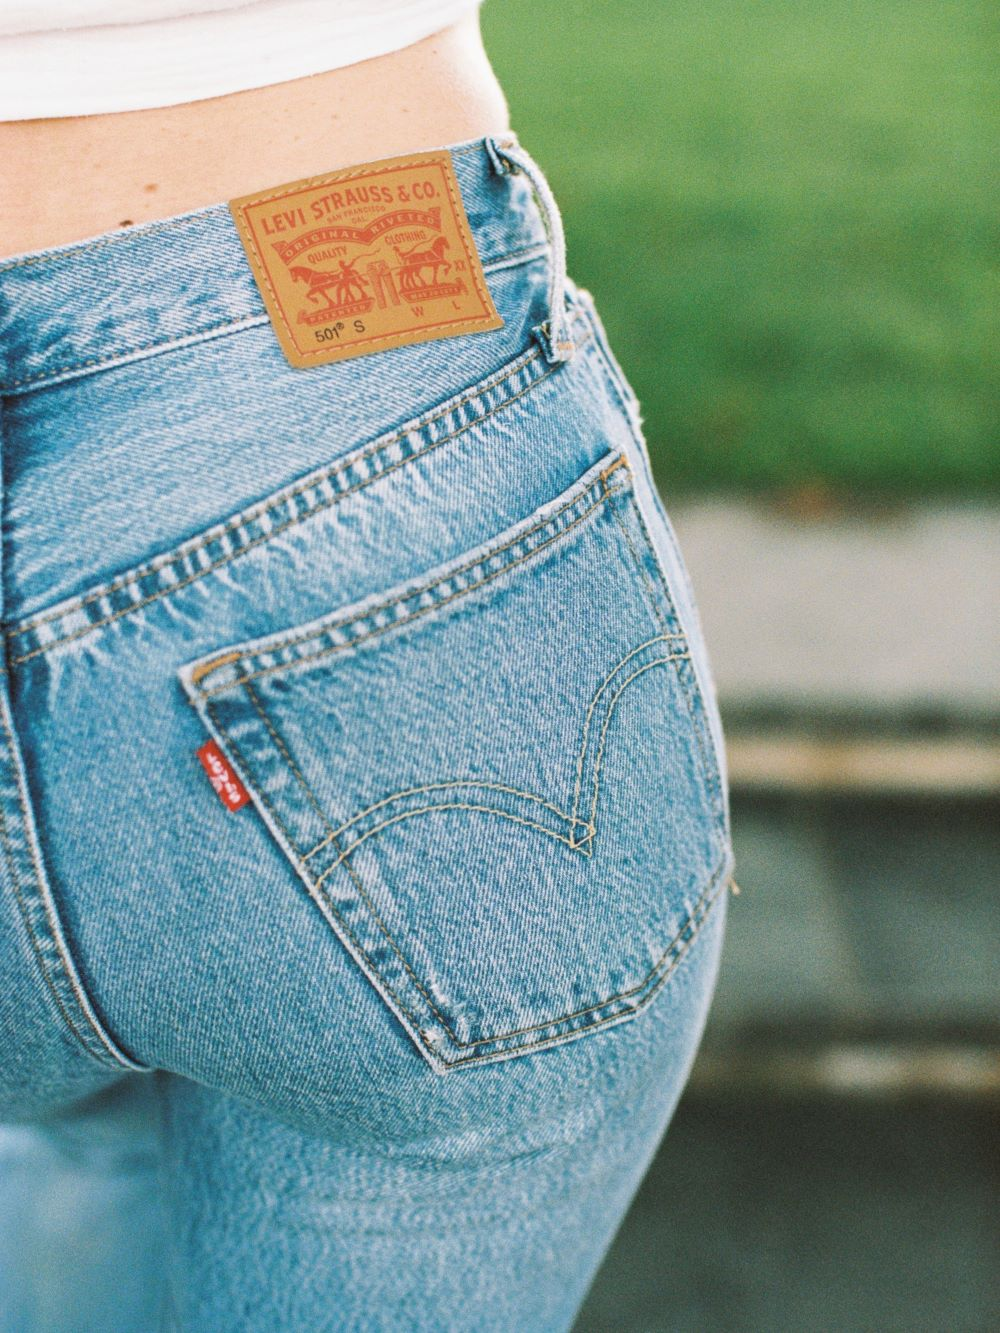 """Making its return as a public company in 2019, Levi's focused """"on what we could control in a challenging environment,"""" CEO Chip Bergh said."""